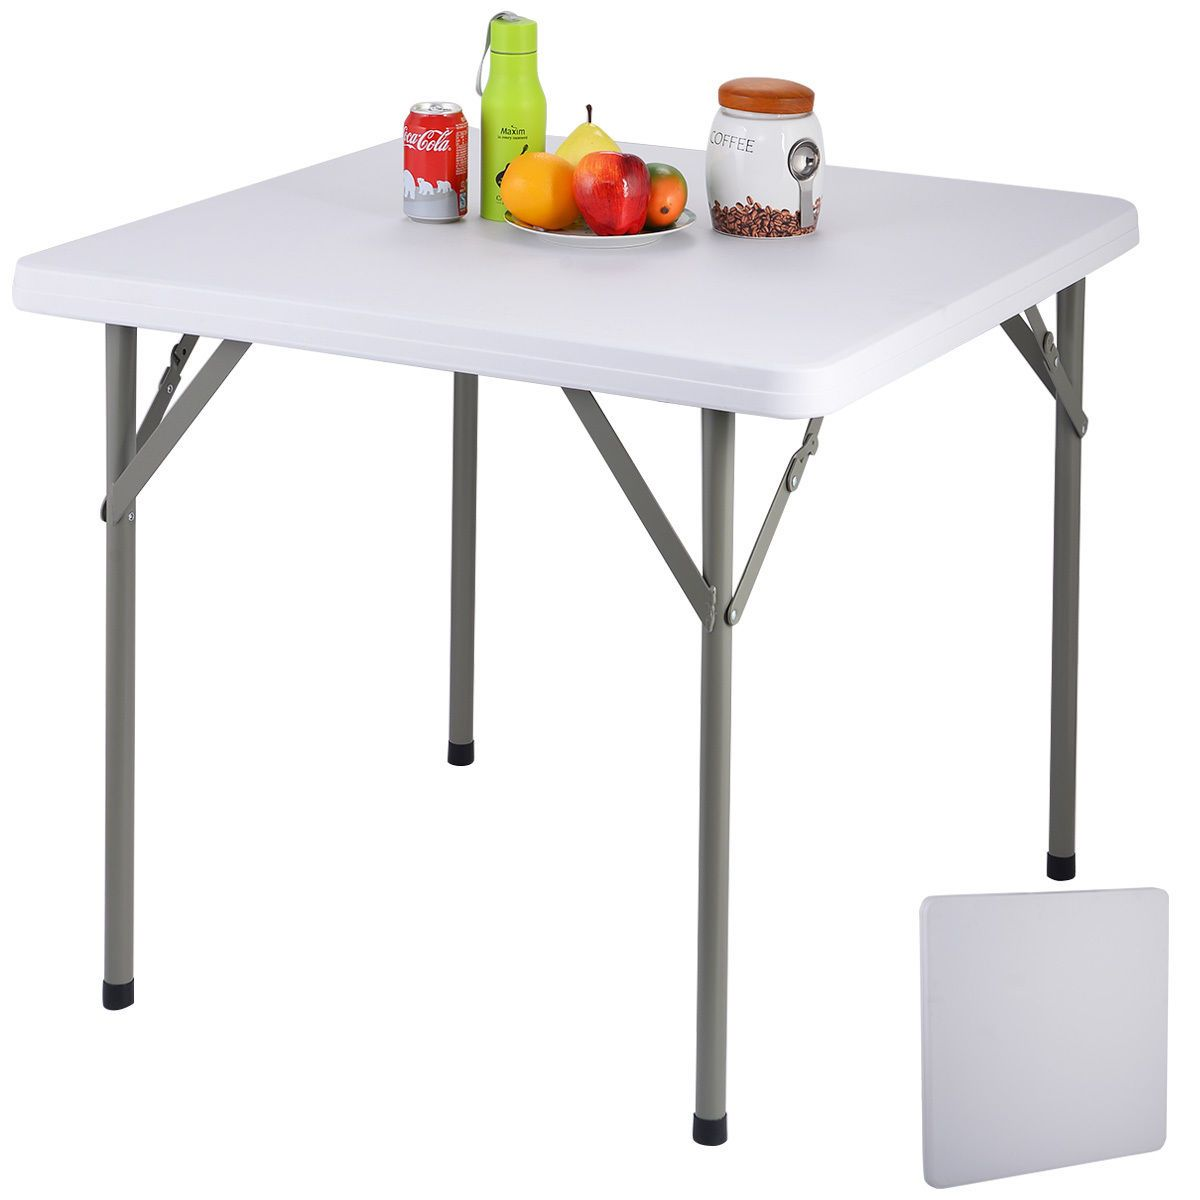 Buy Mainstays Fold In Half Table Plastic Outdoor Black At Online Store